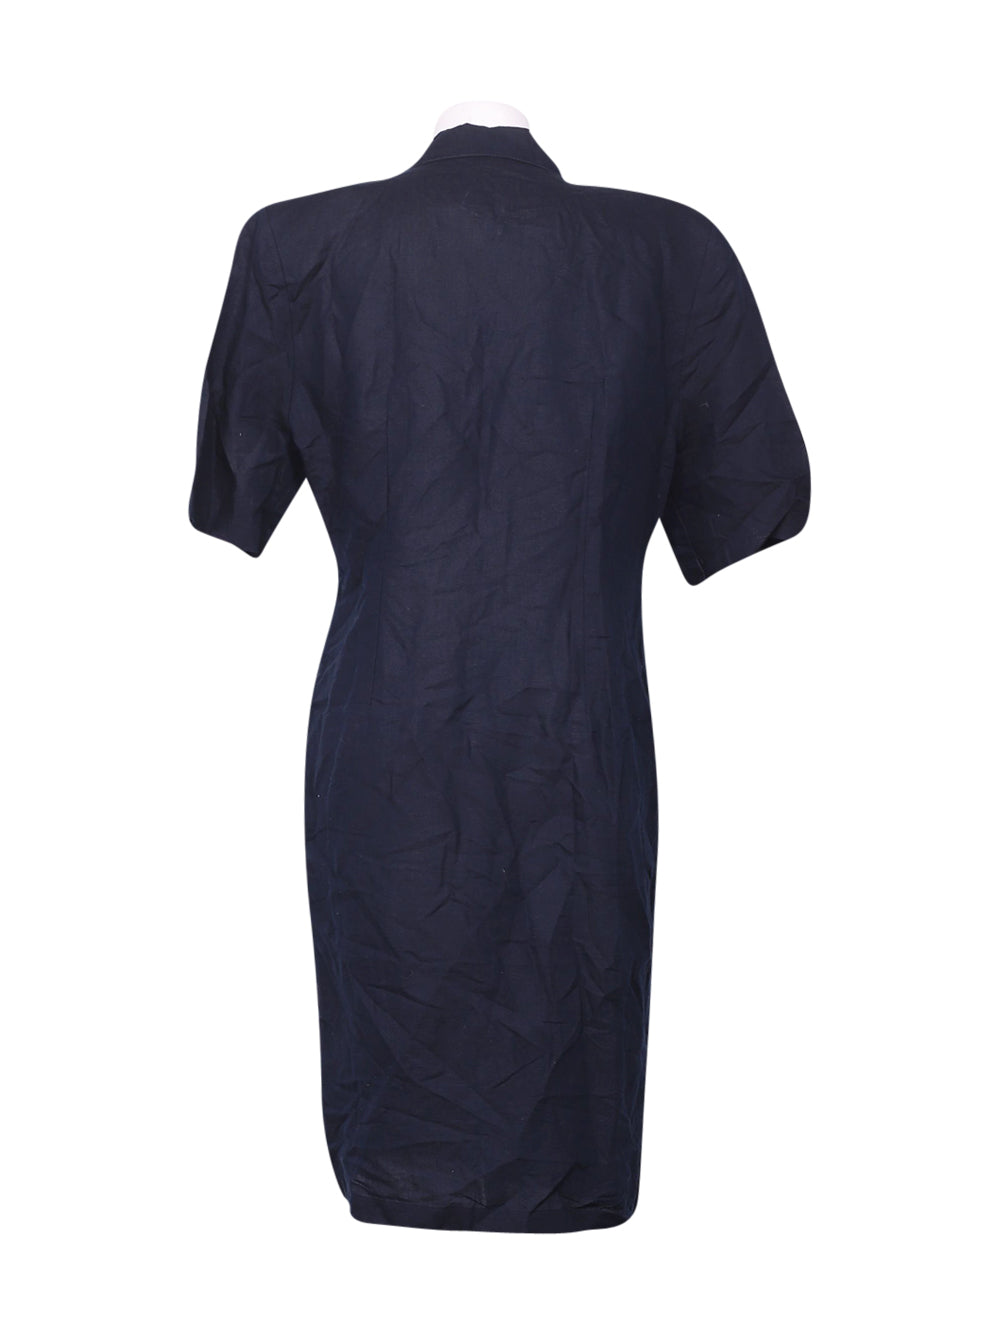 Back photo of Preloved Darel Blue Woman's dress - size 16/XXL